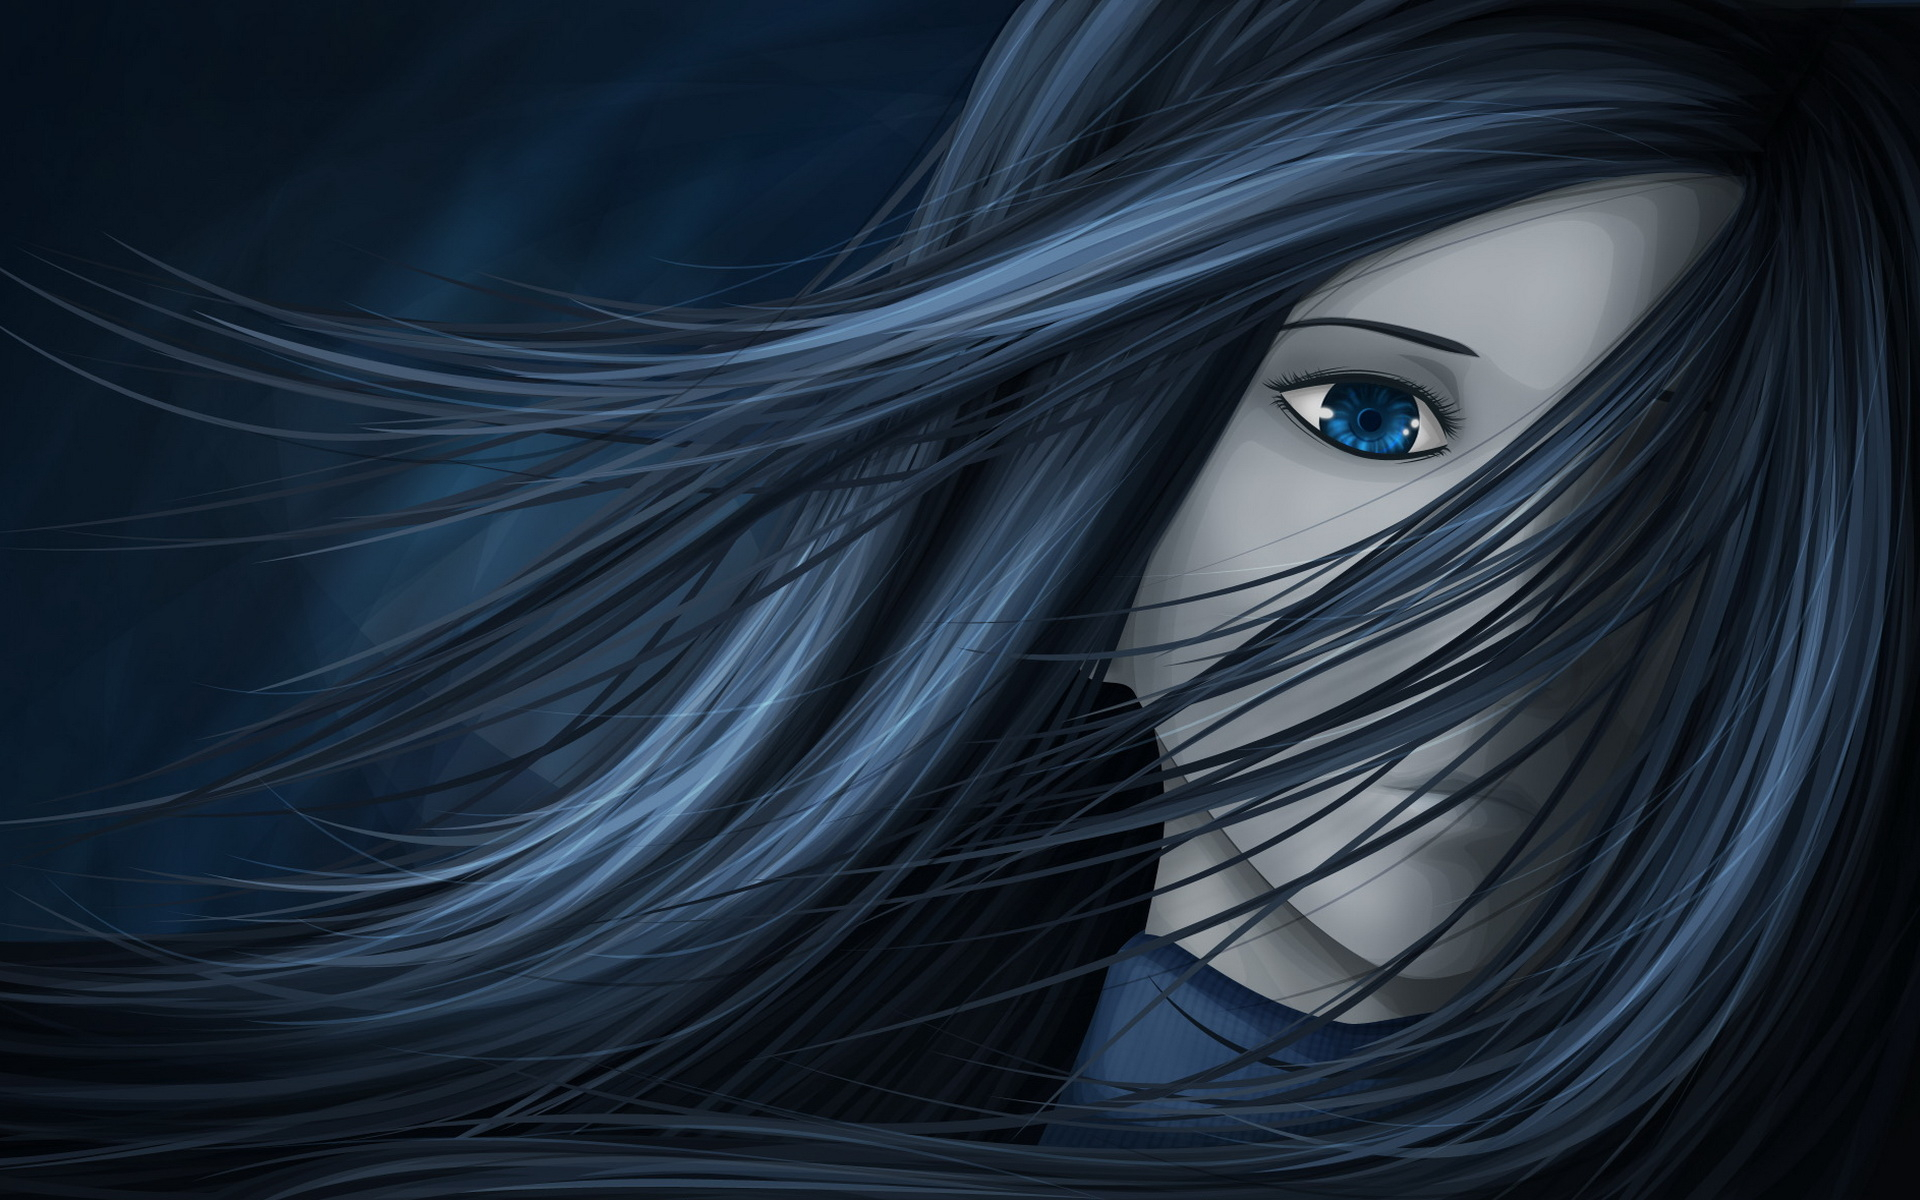 Drawn vampire blue eye Wallpaper download: maiden wallpapers and